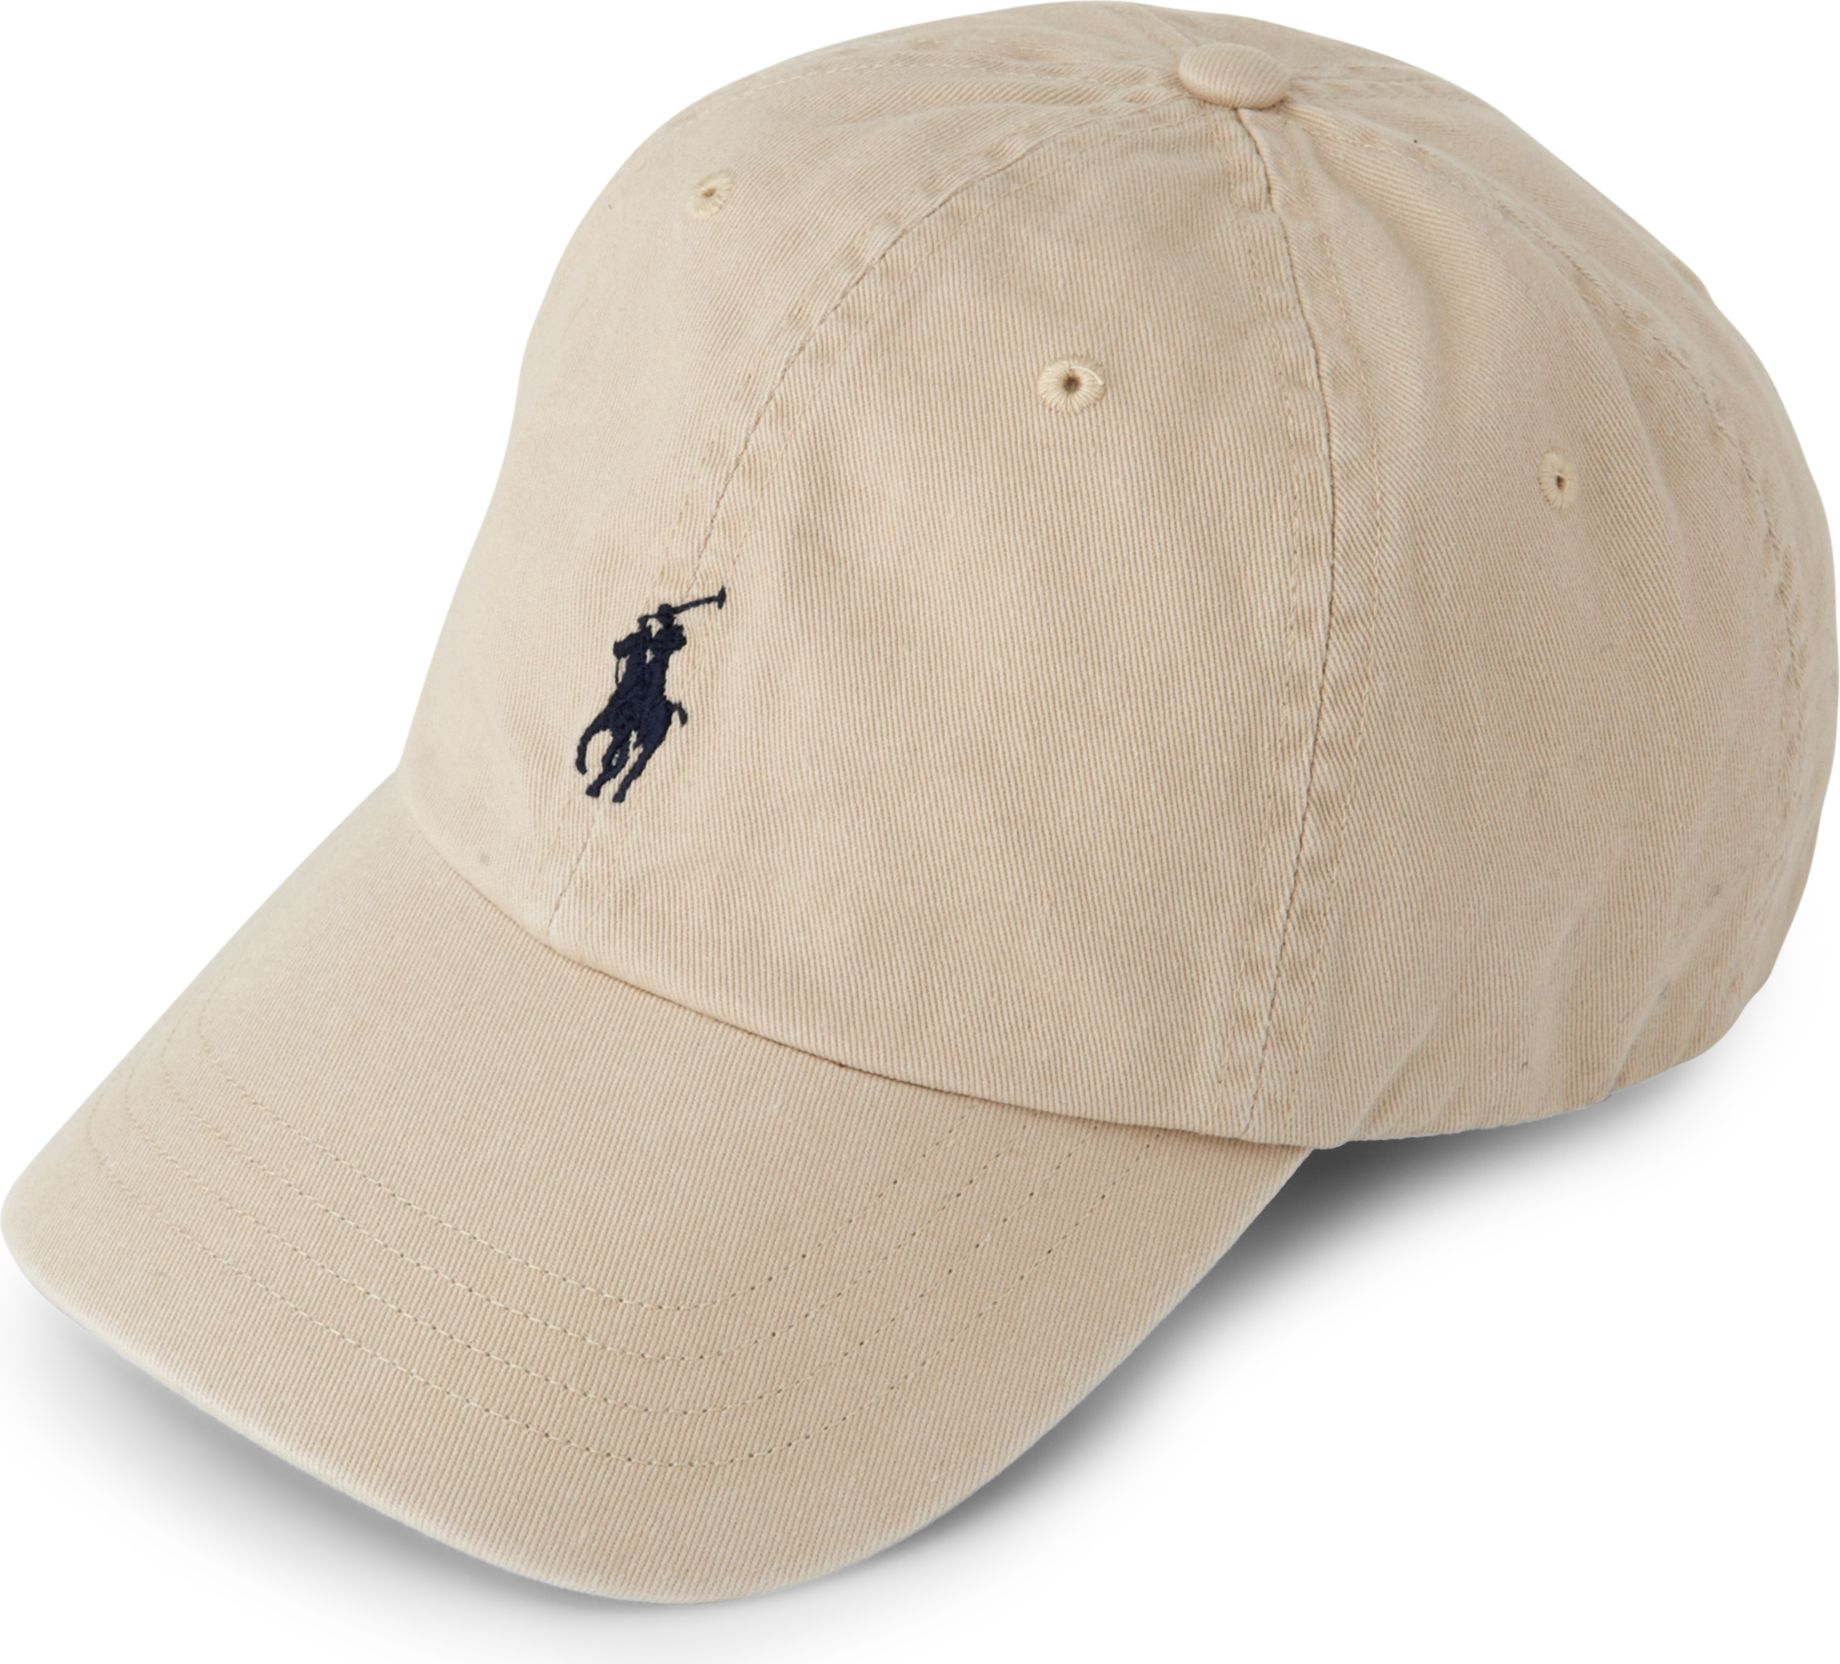 ralph lauren signature pony baseball cap in natural for men lyst. Black Bedroom Furniture Sets. Home Design Ideas